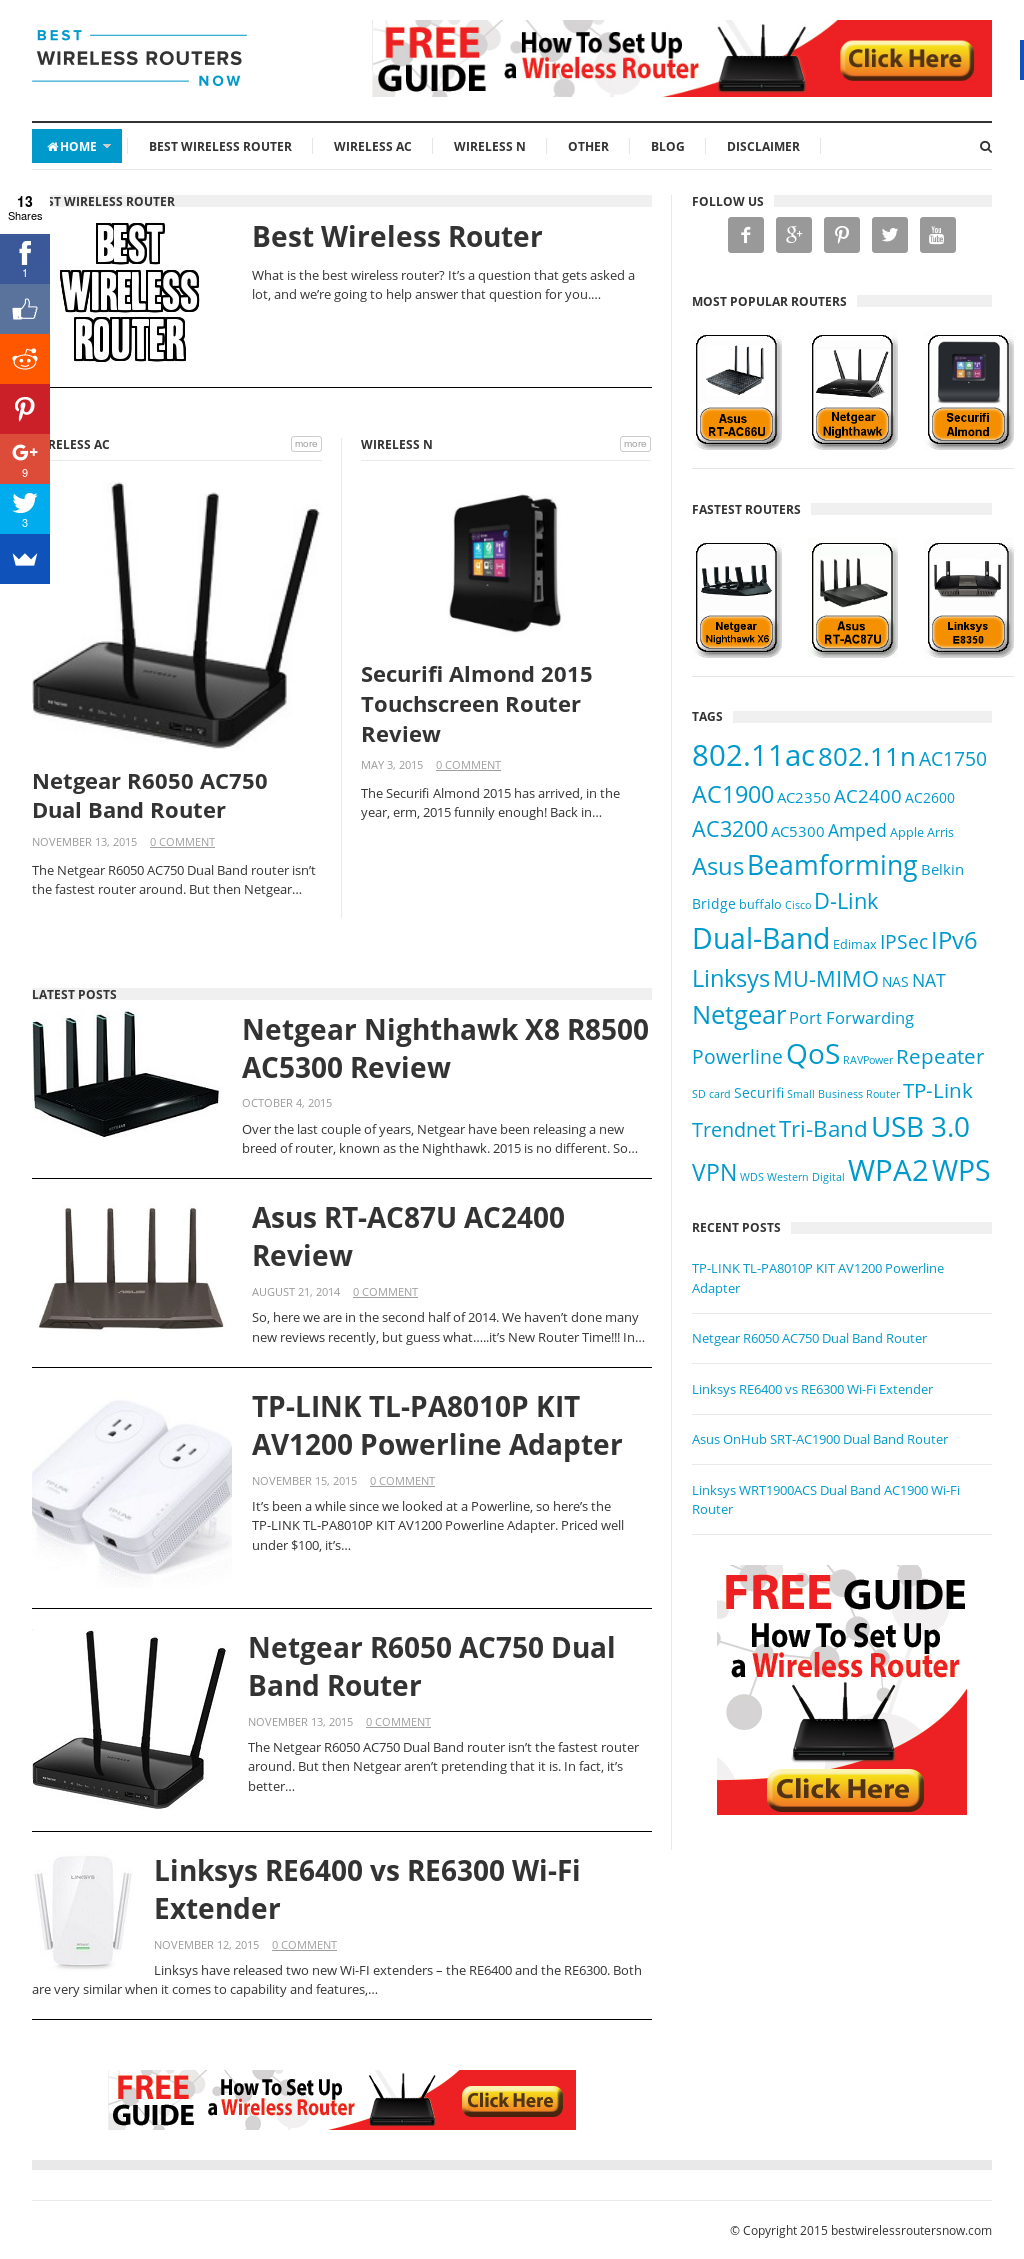 Best Wireless Routers Now Competitors, Revenue and Employees